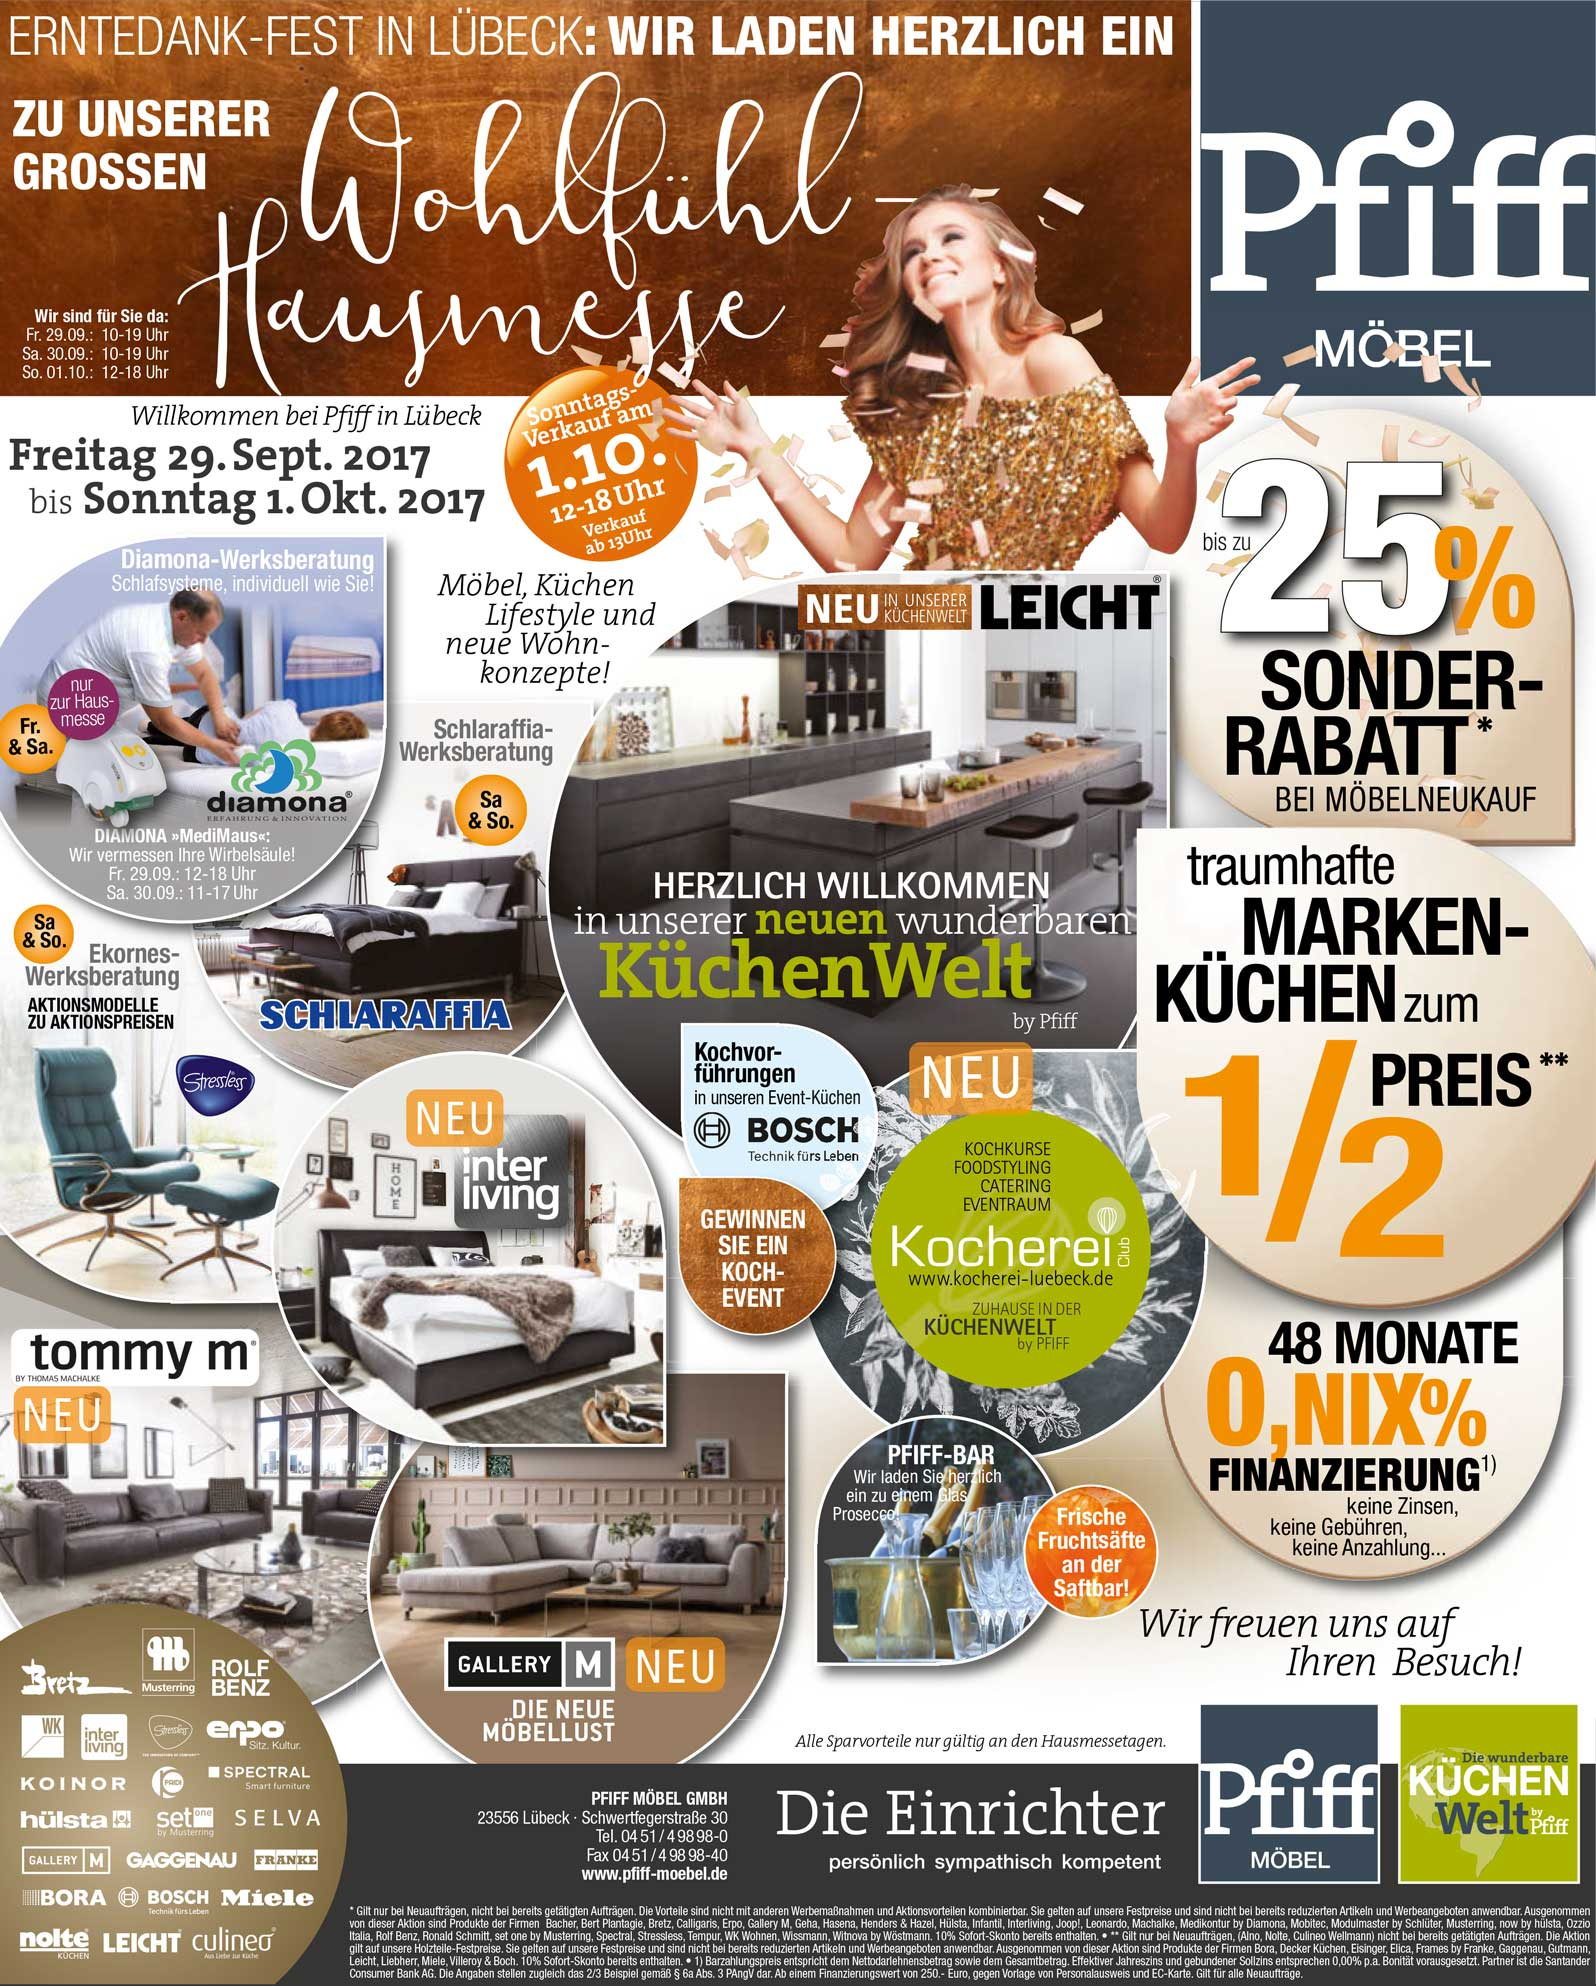 1 oktober 2017 eine stadt feiert erntedank aktionen in den gesch ften l beck management e v. Black Bedroom Furniture Sets. Home Design Ideas